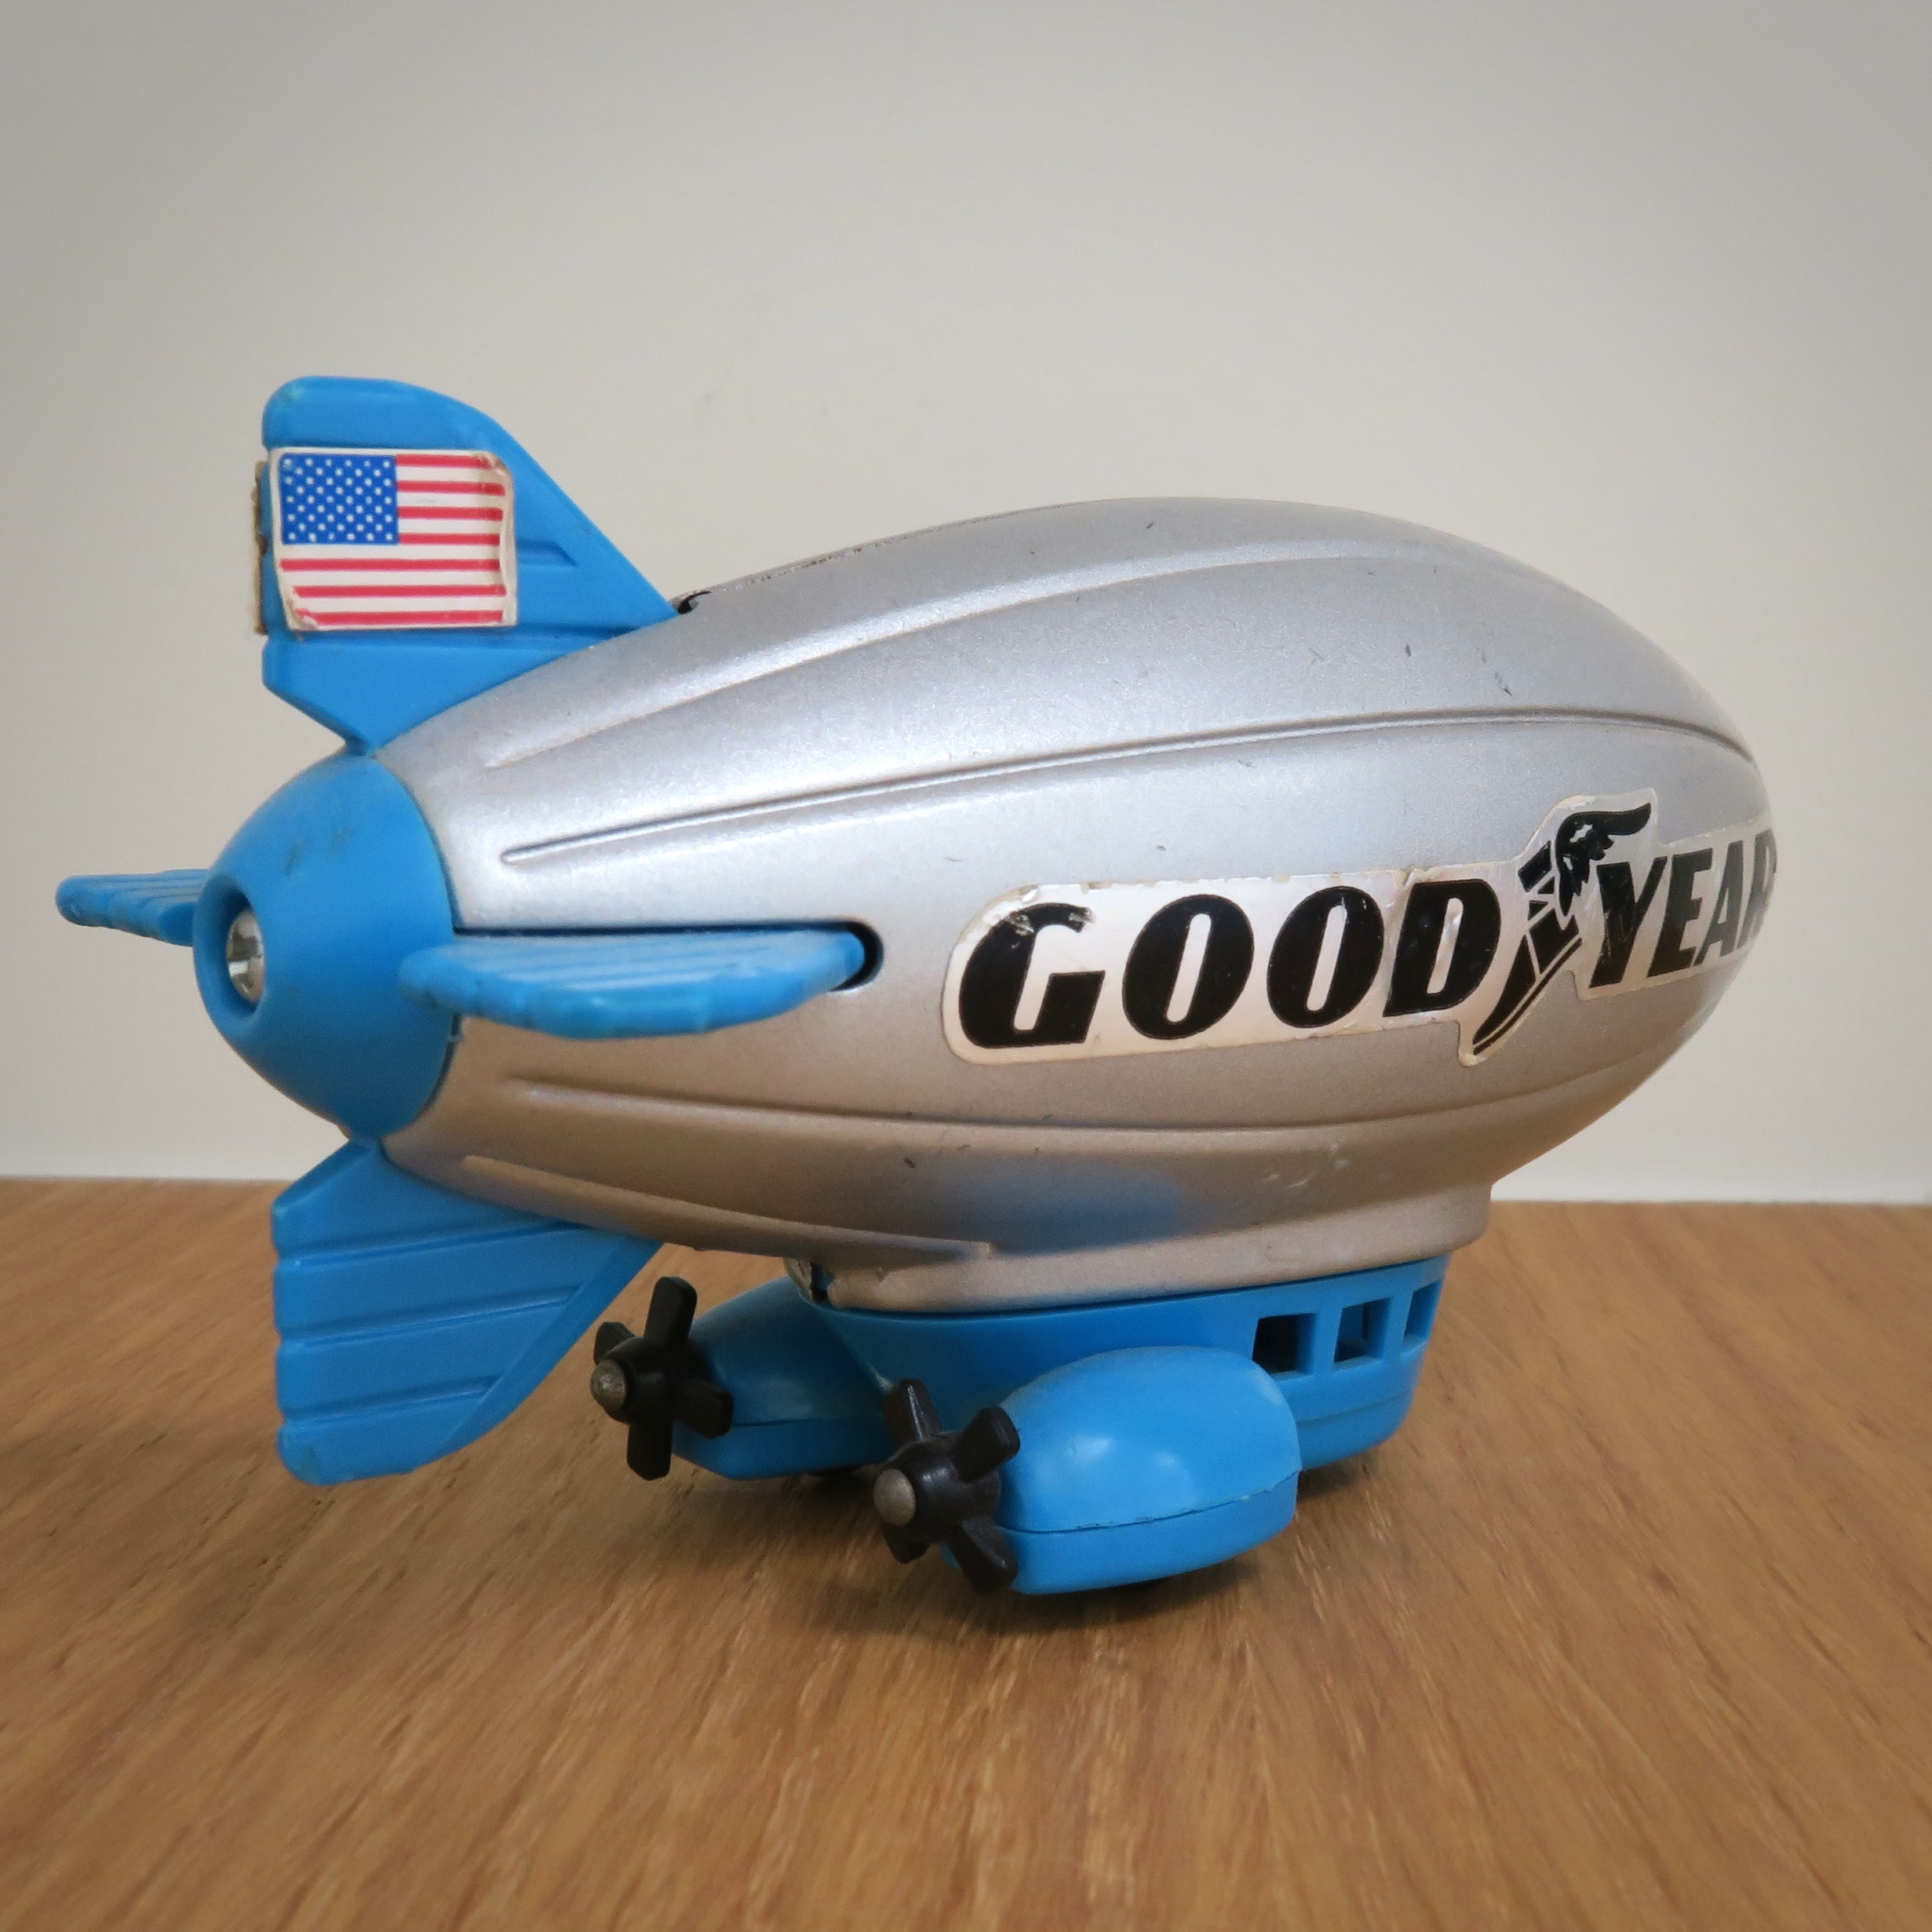 Goodyear Blimp